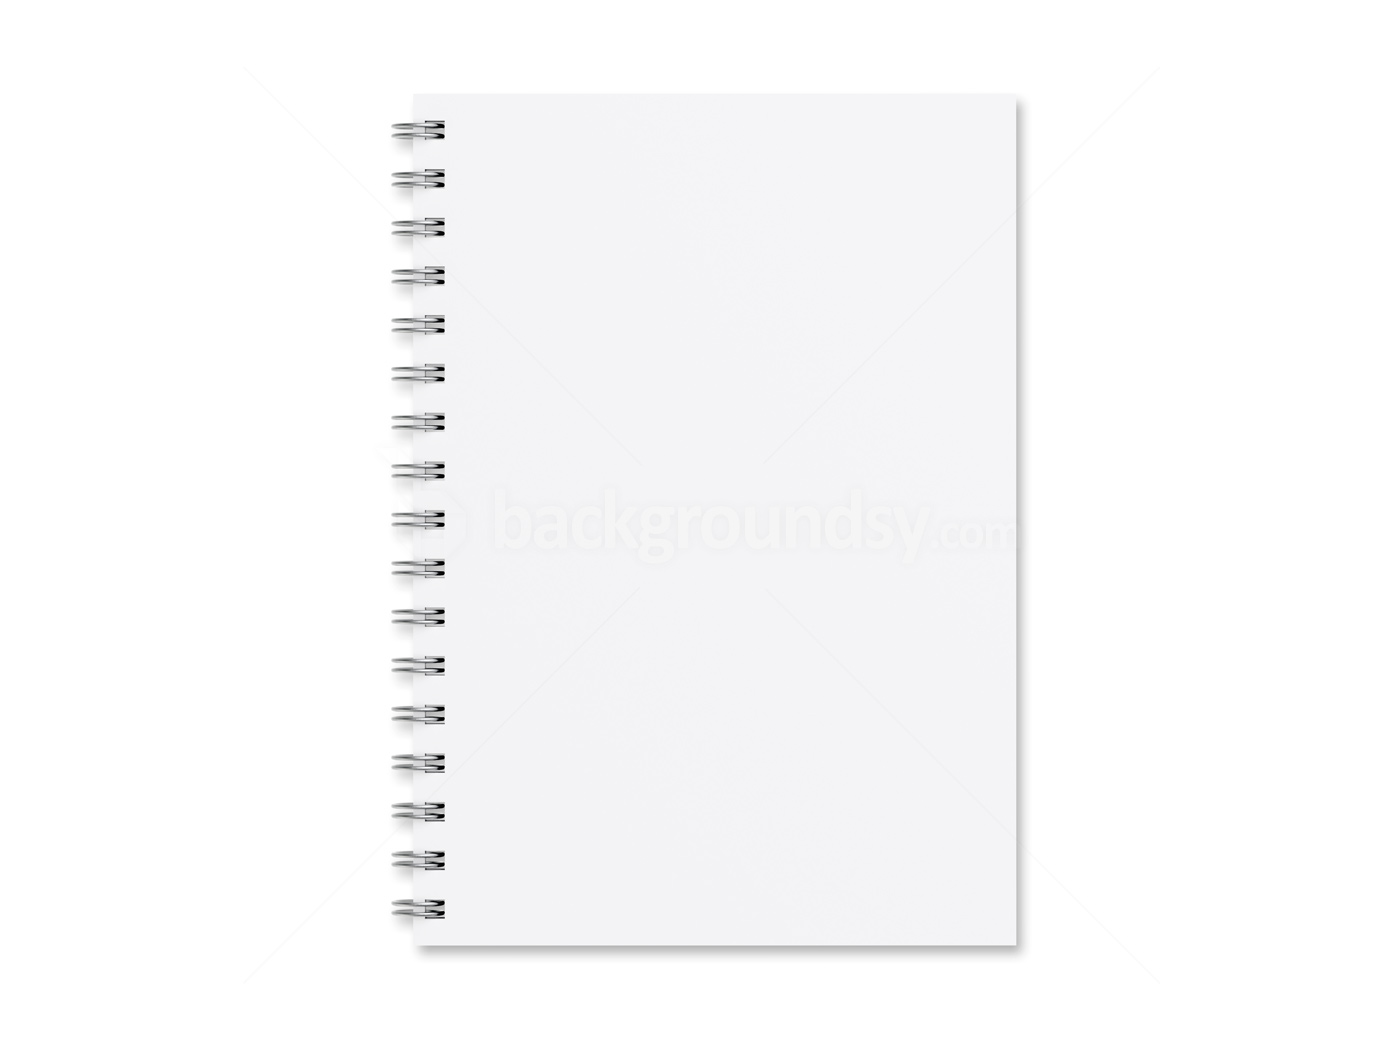 40463-Custom-Spiral-Notebook-1-1.jpg